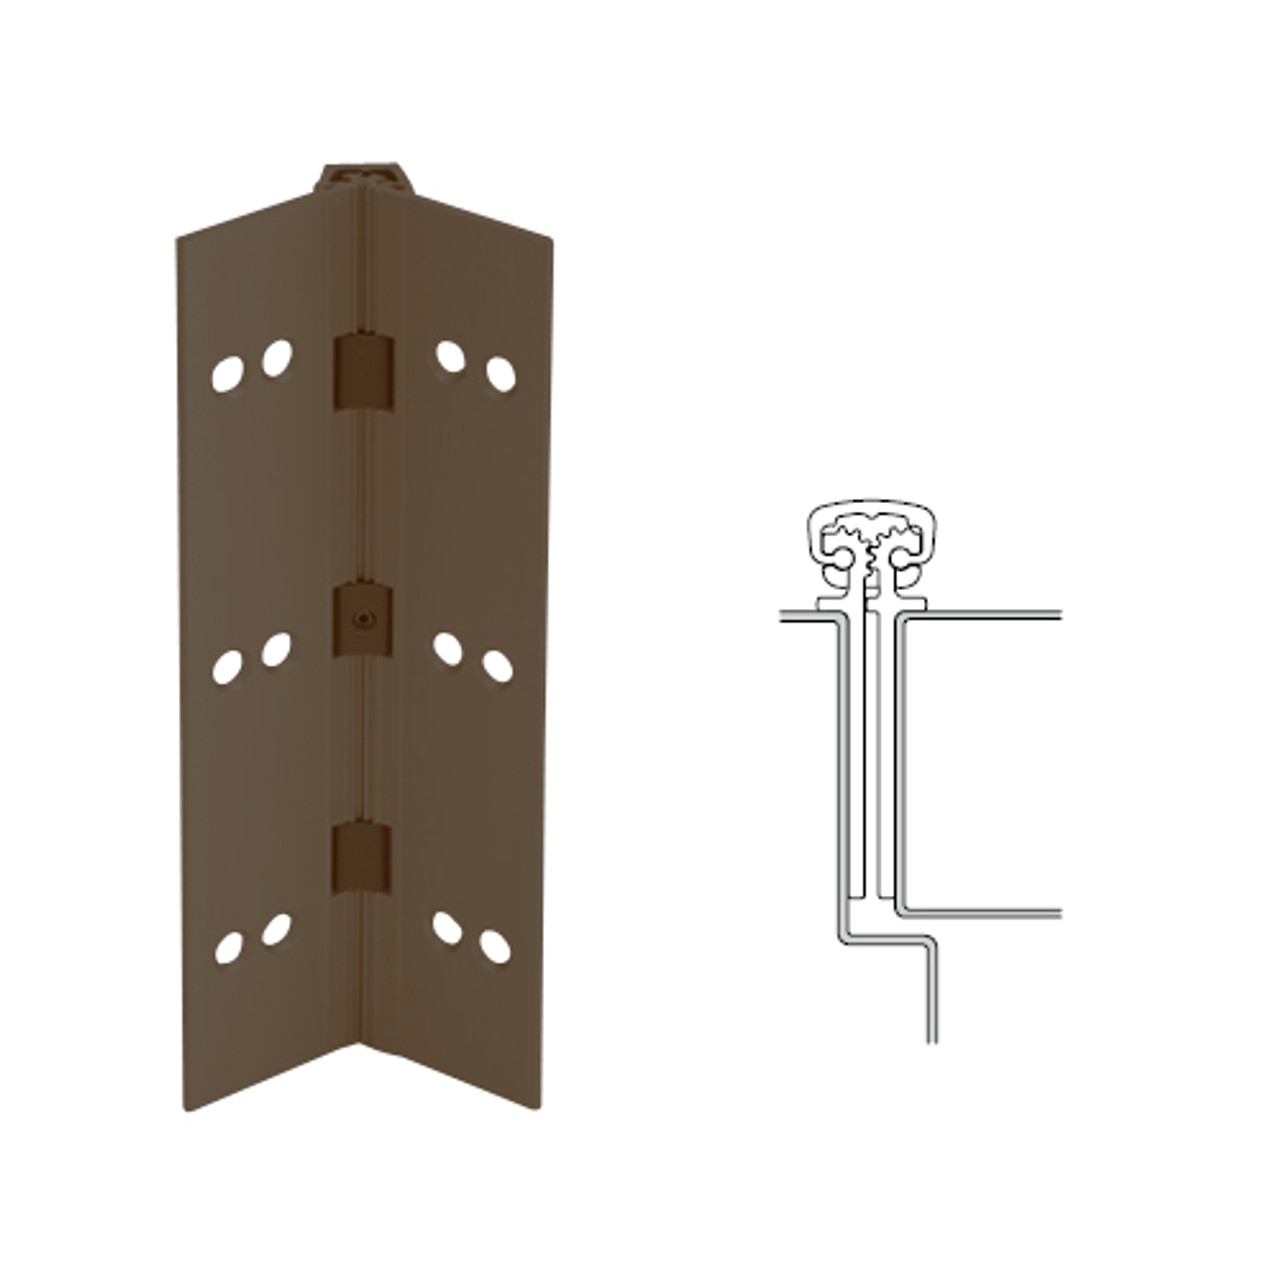 027XY-313AN-83-WD IVES Full Mortise Continuous Geared Hinges with Wood Screws in Dark Bronze Anodized